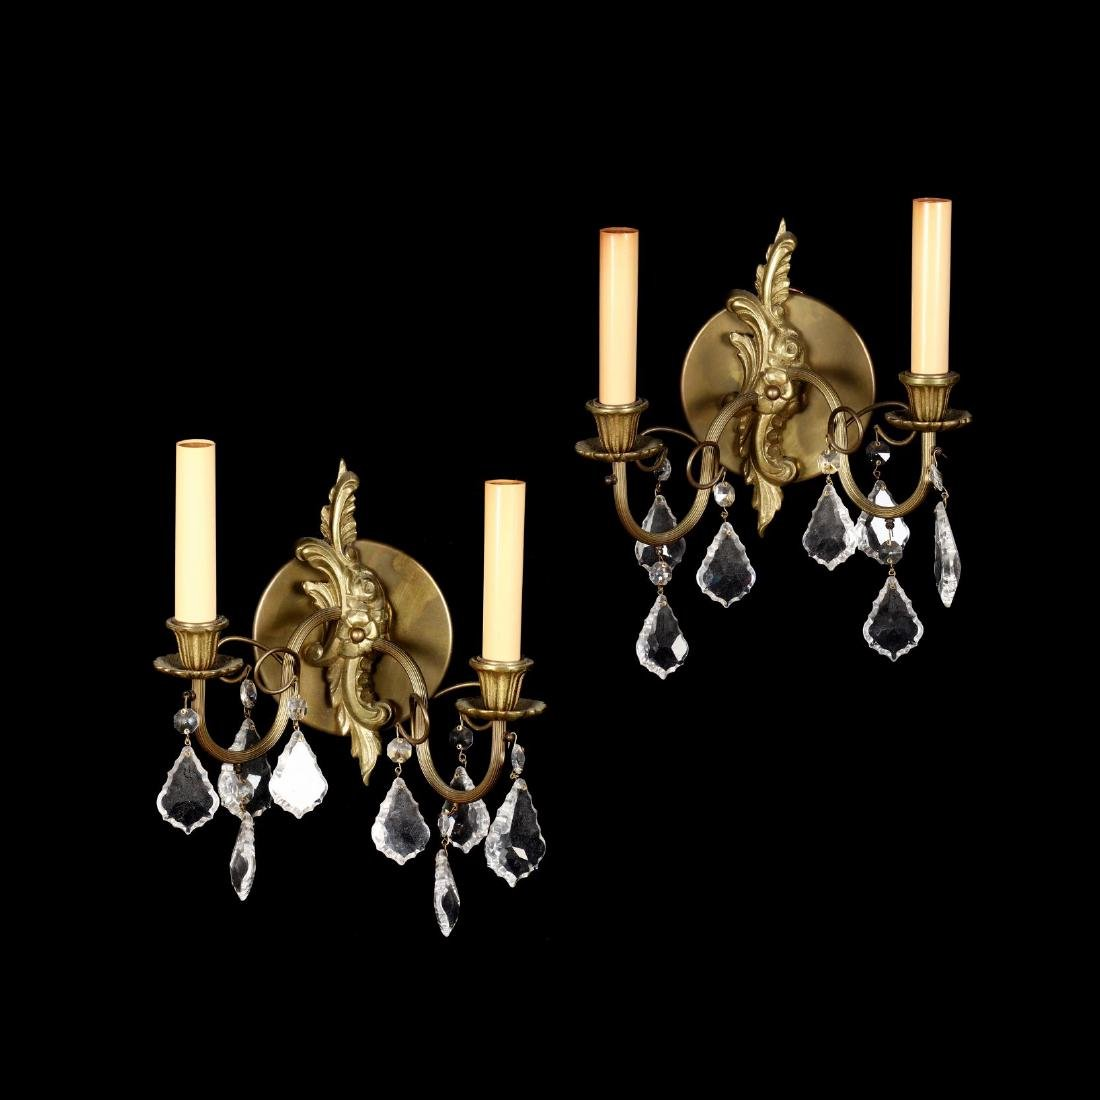 Pair of French Rococo Style Drop Prism Wall Sconces